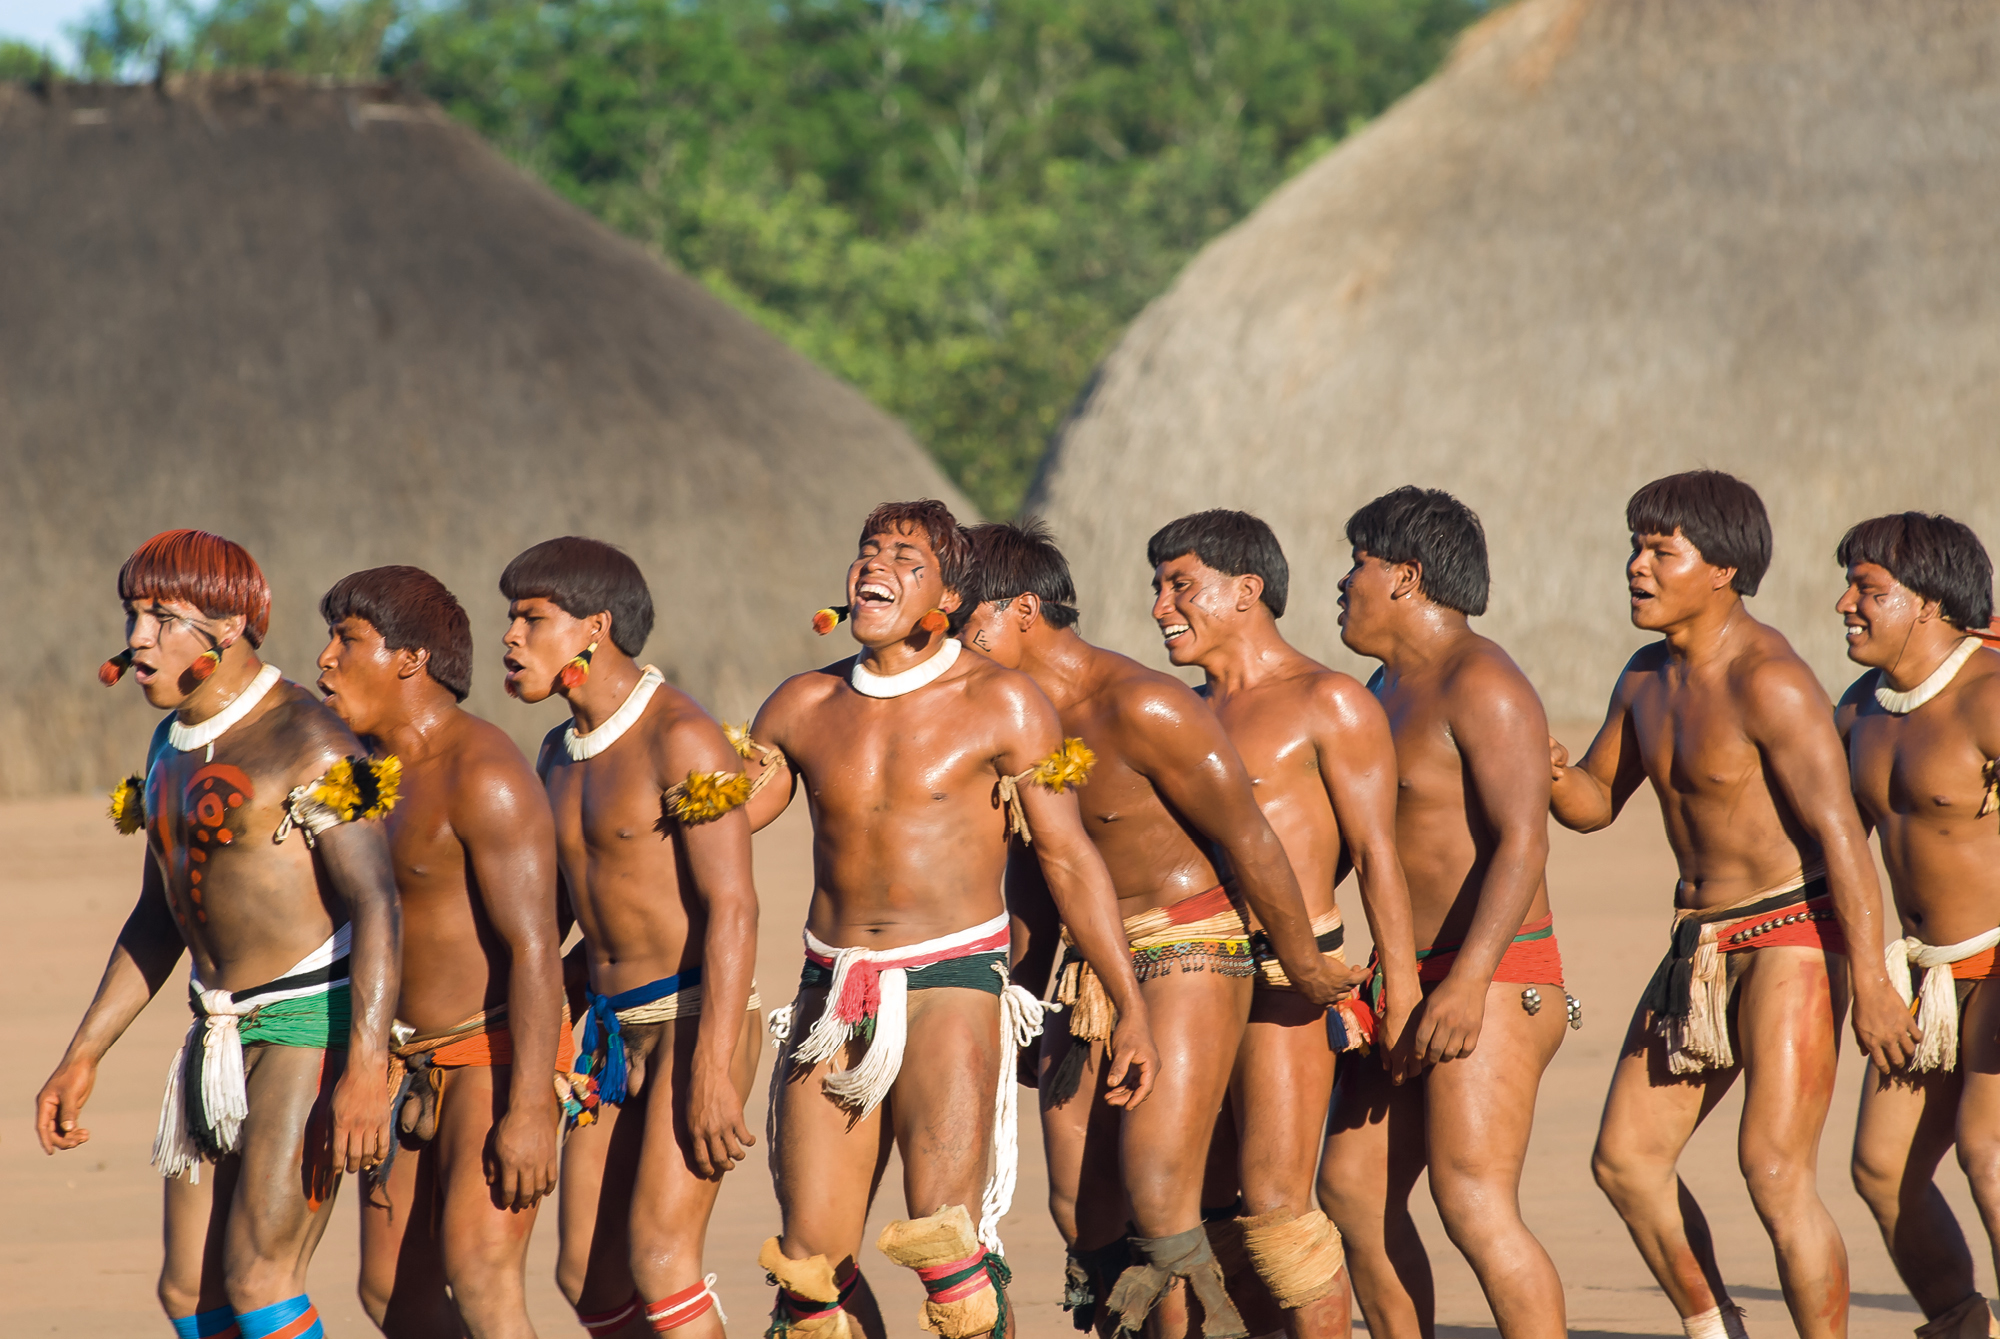 Cunningham has been photographing Amazonian tribes people for many years